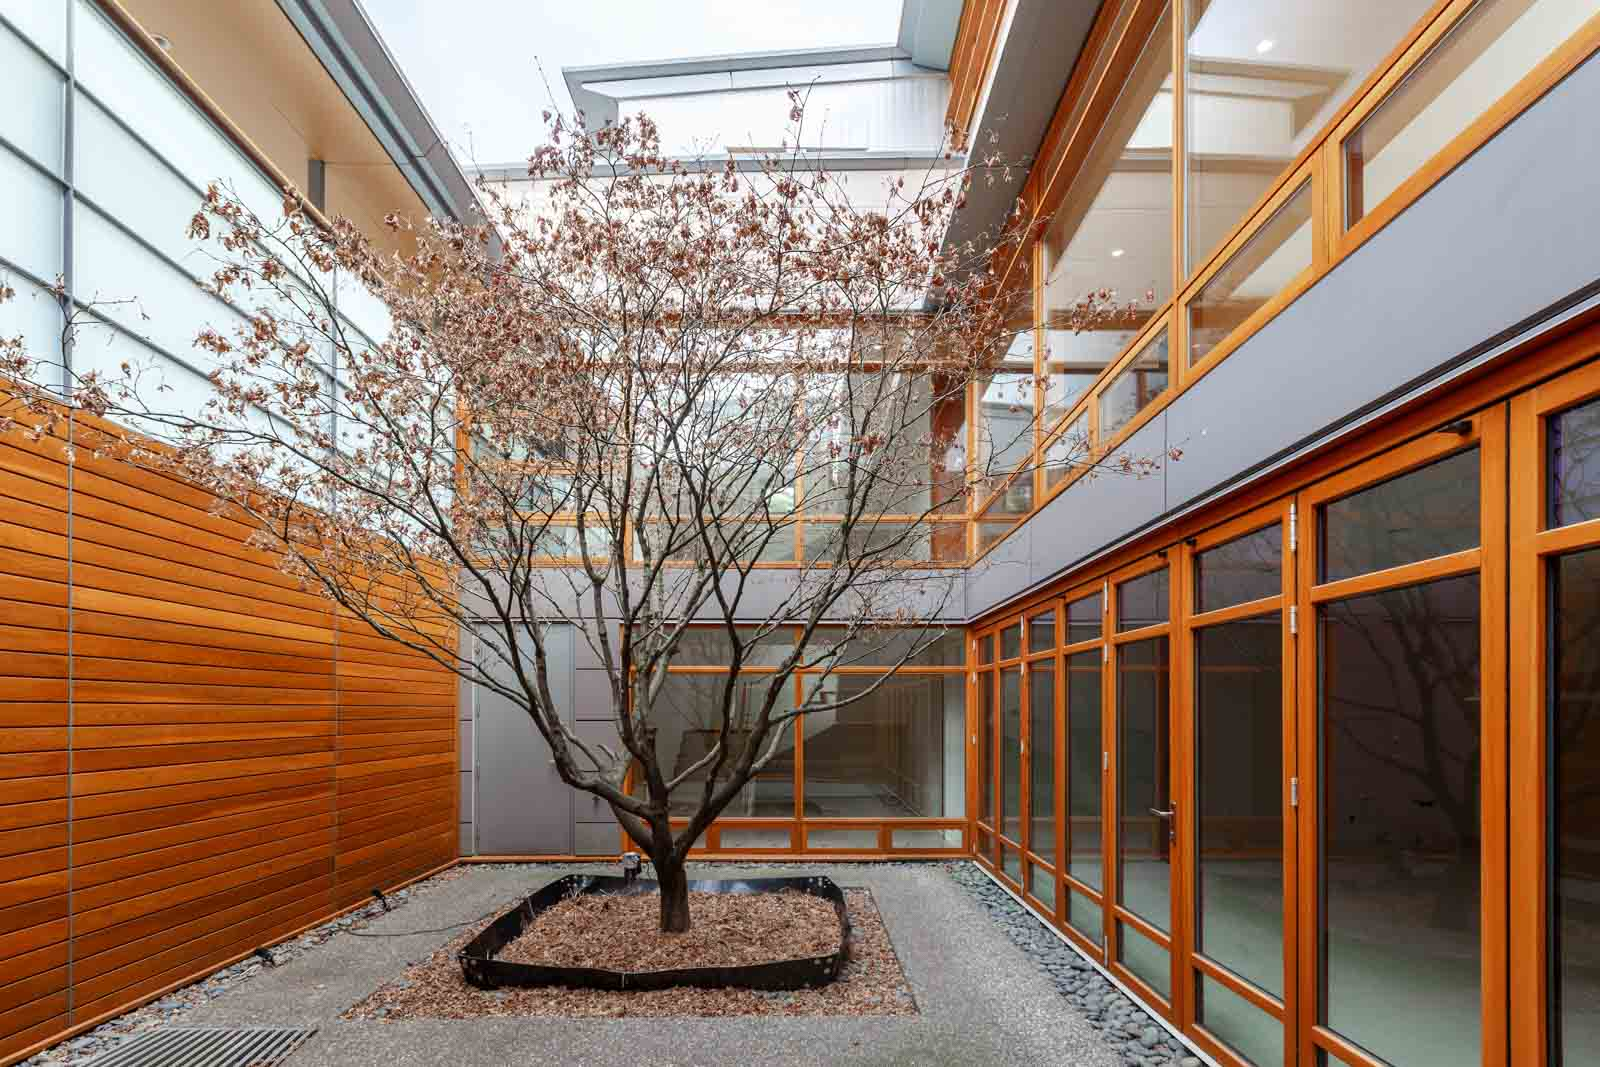 Interior courtyard with tree inside West Vancouver luxury rental home.